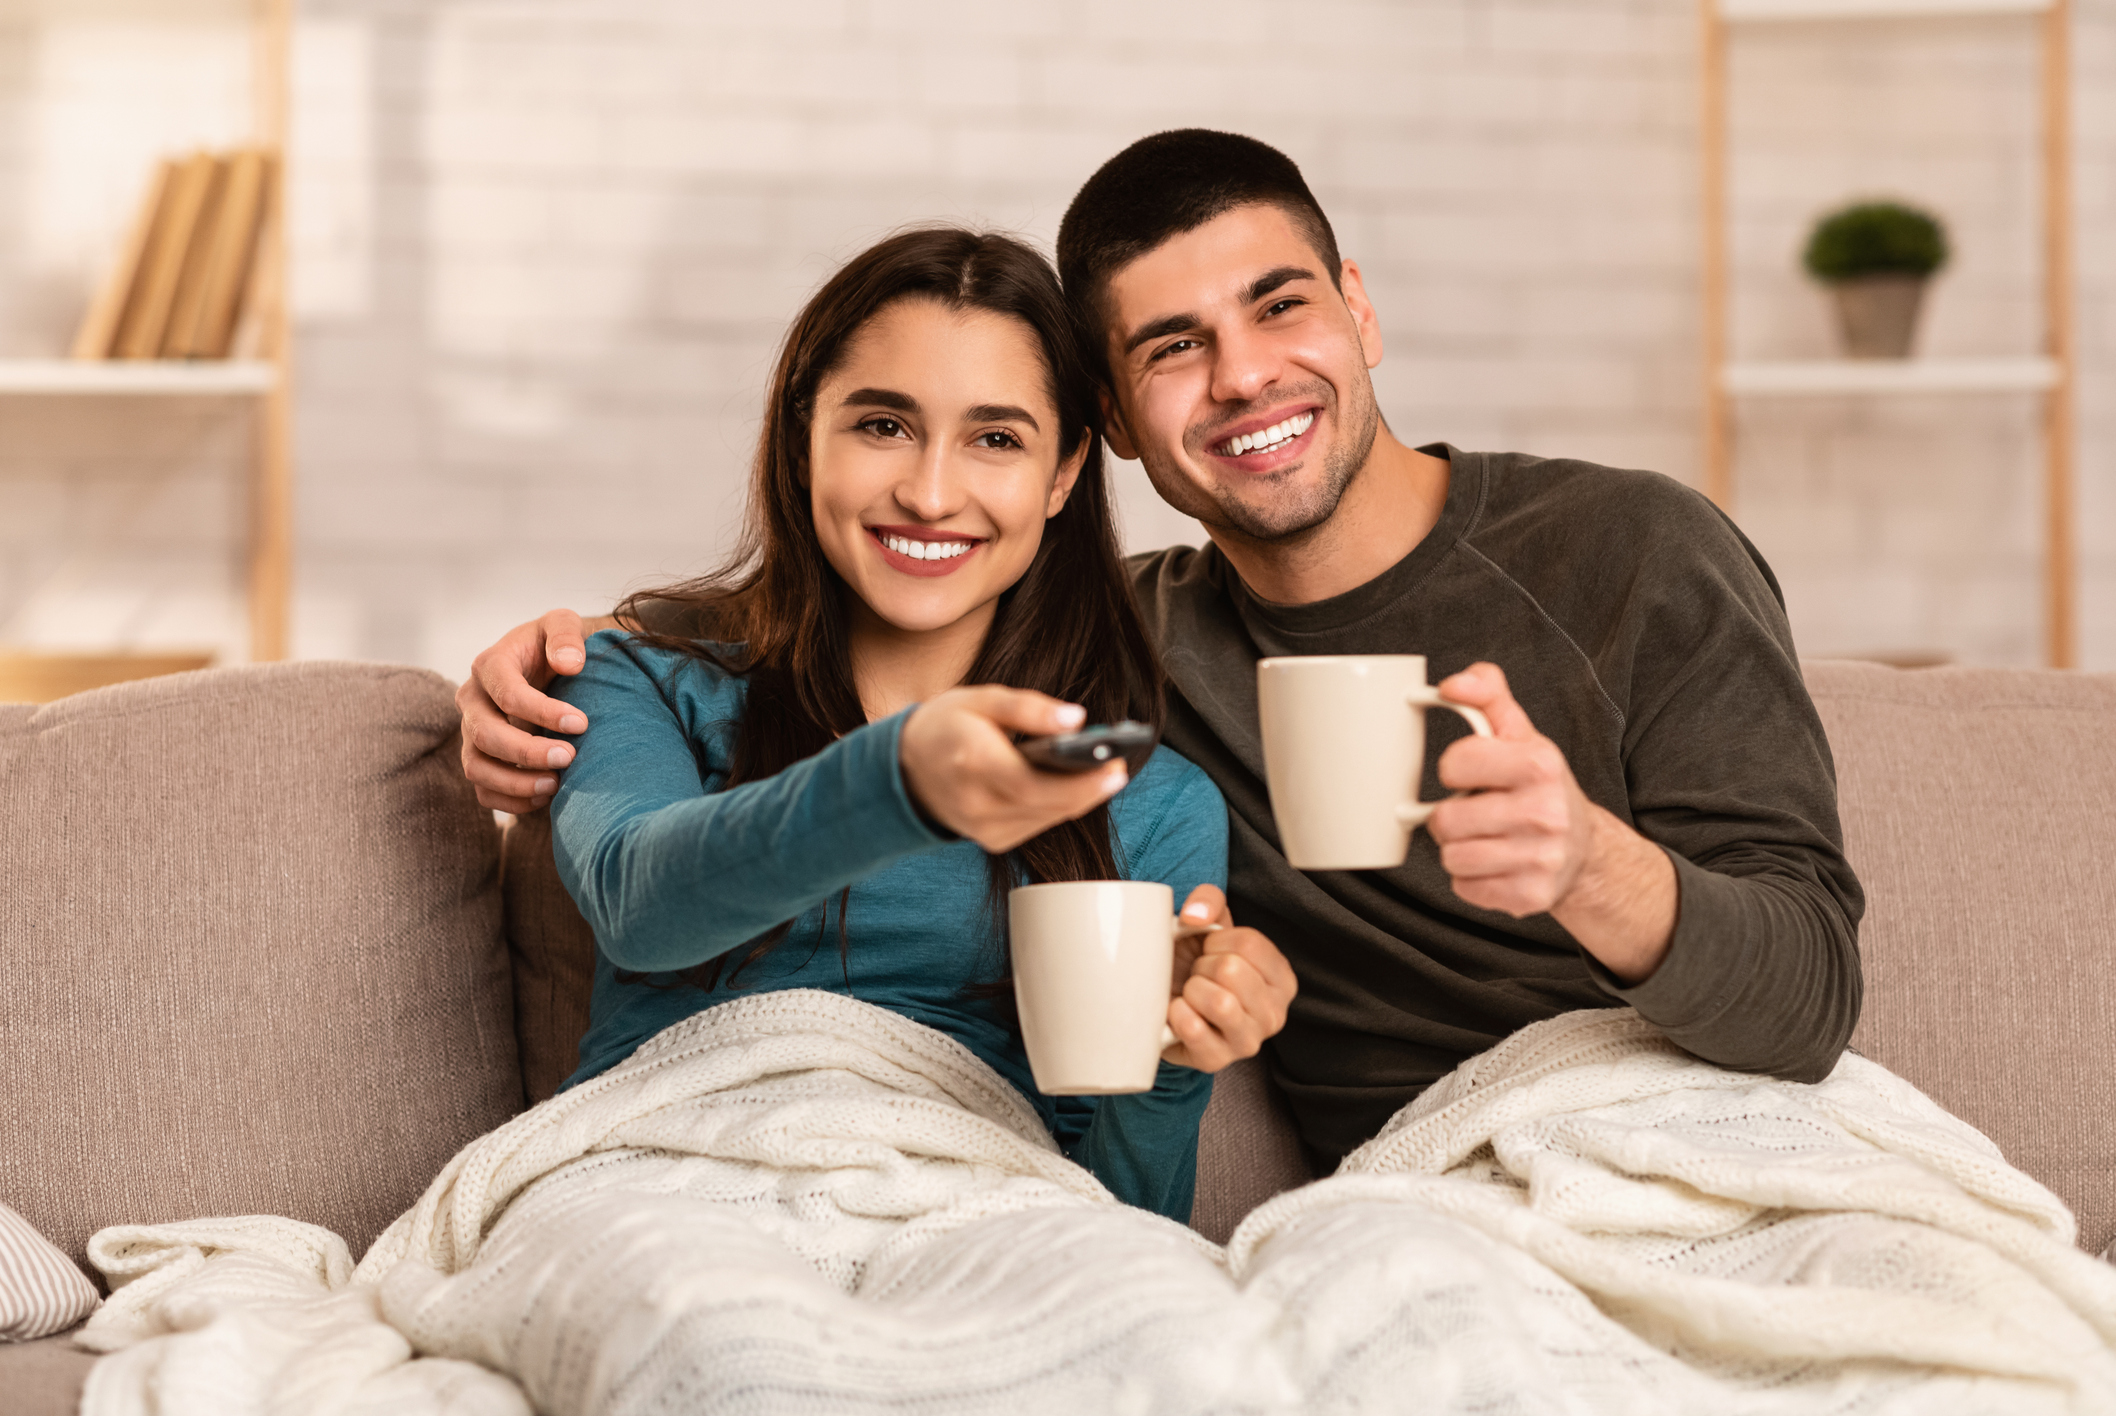 Couple sitting on couch and watching TV